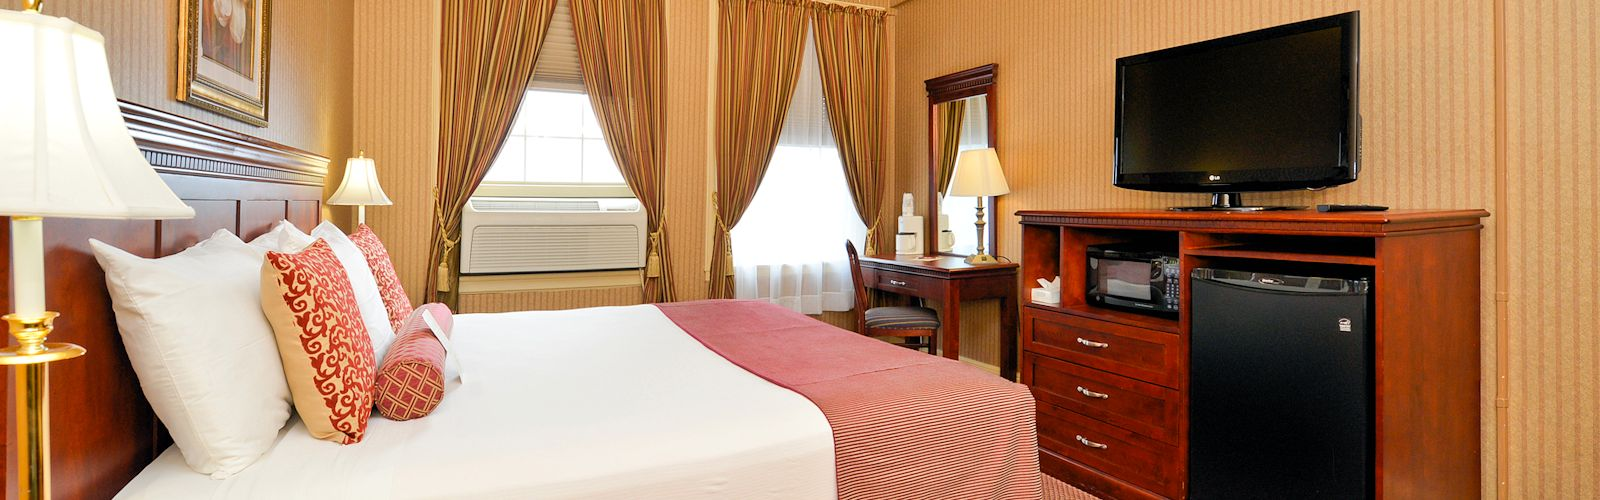 Genetti Hotel & Suites - King Traditional